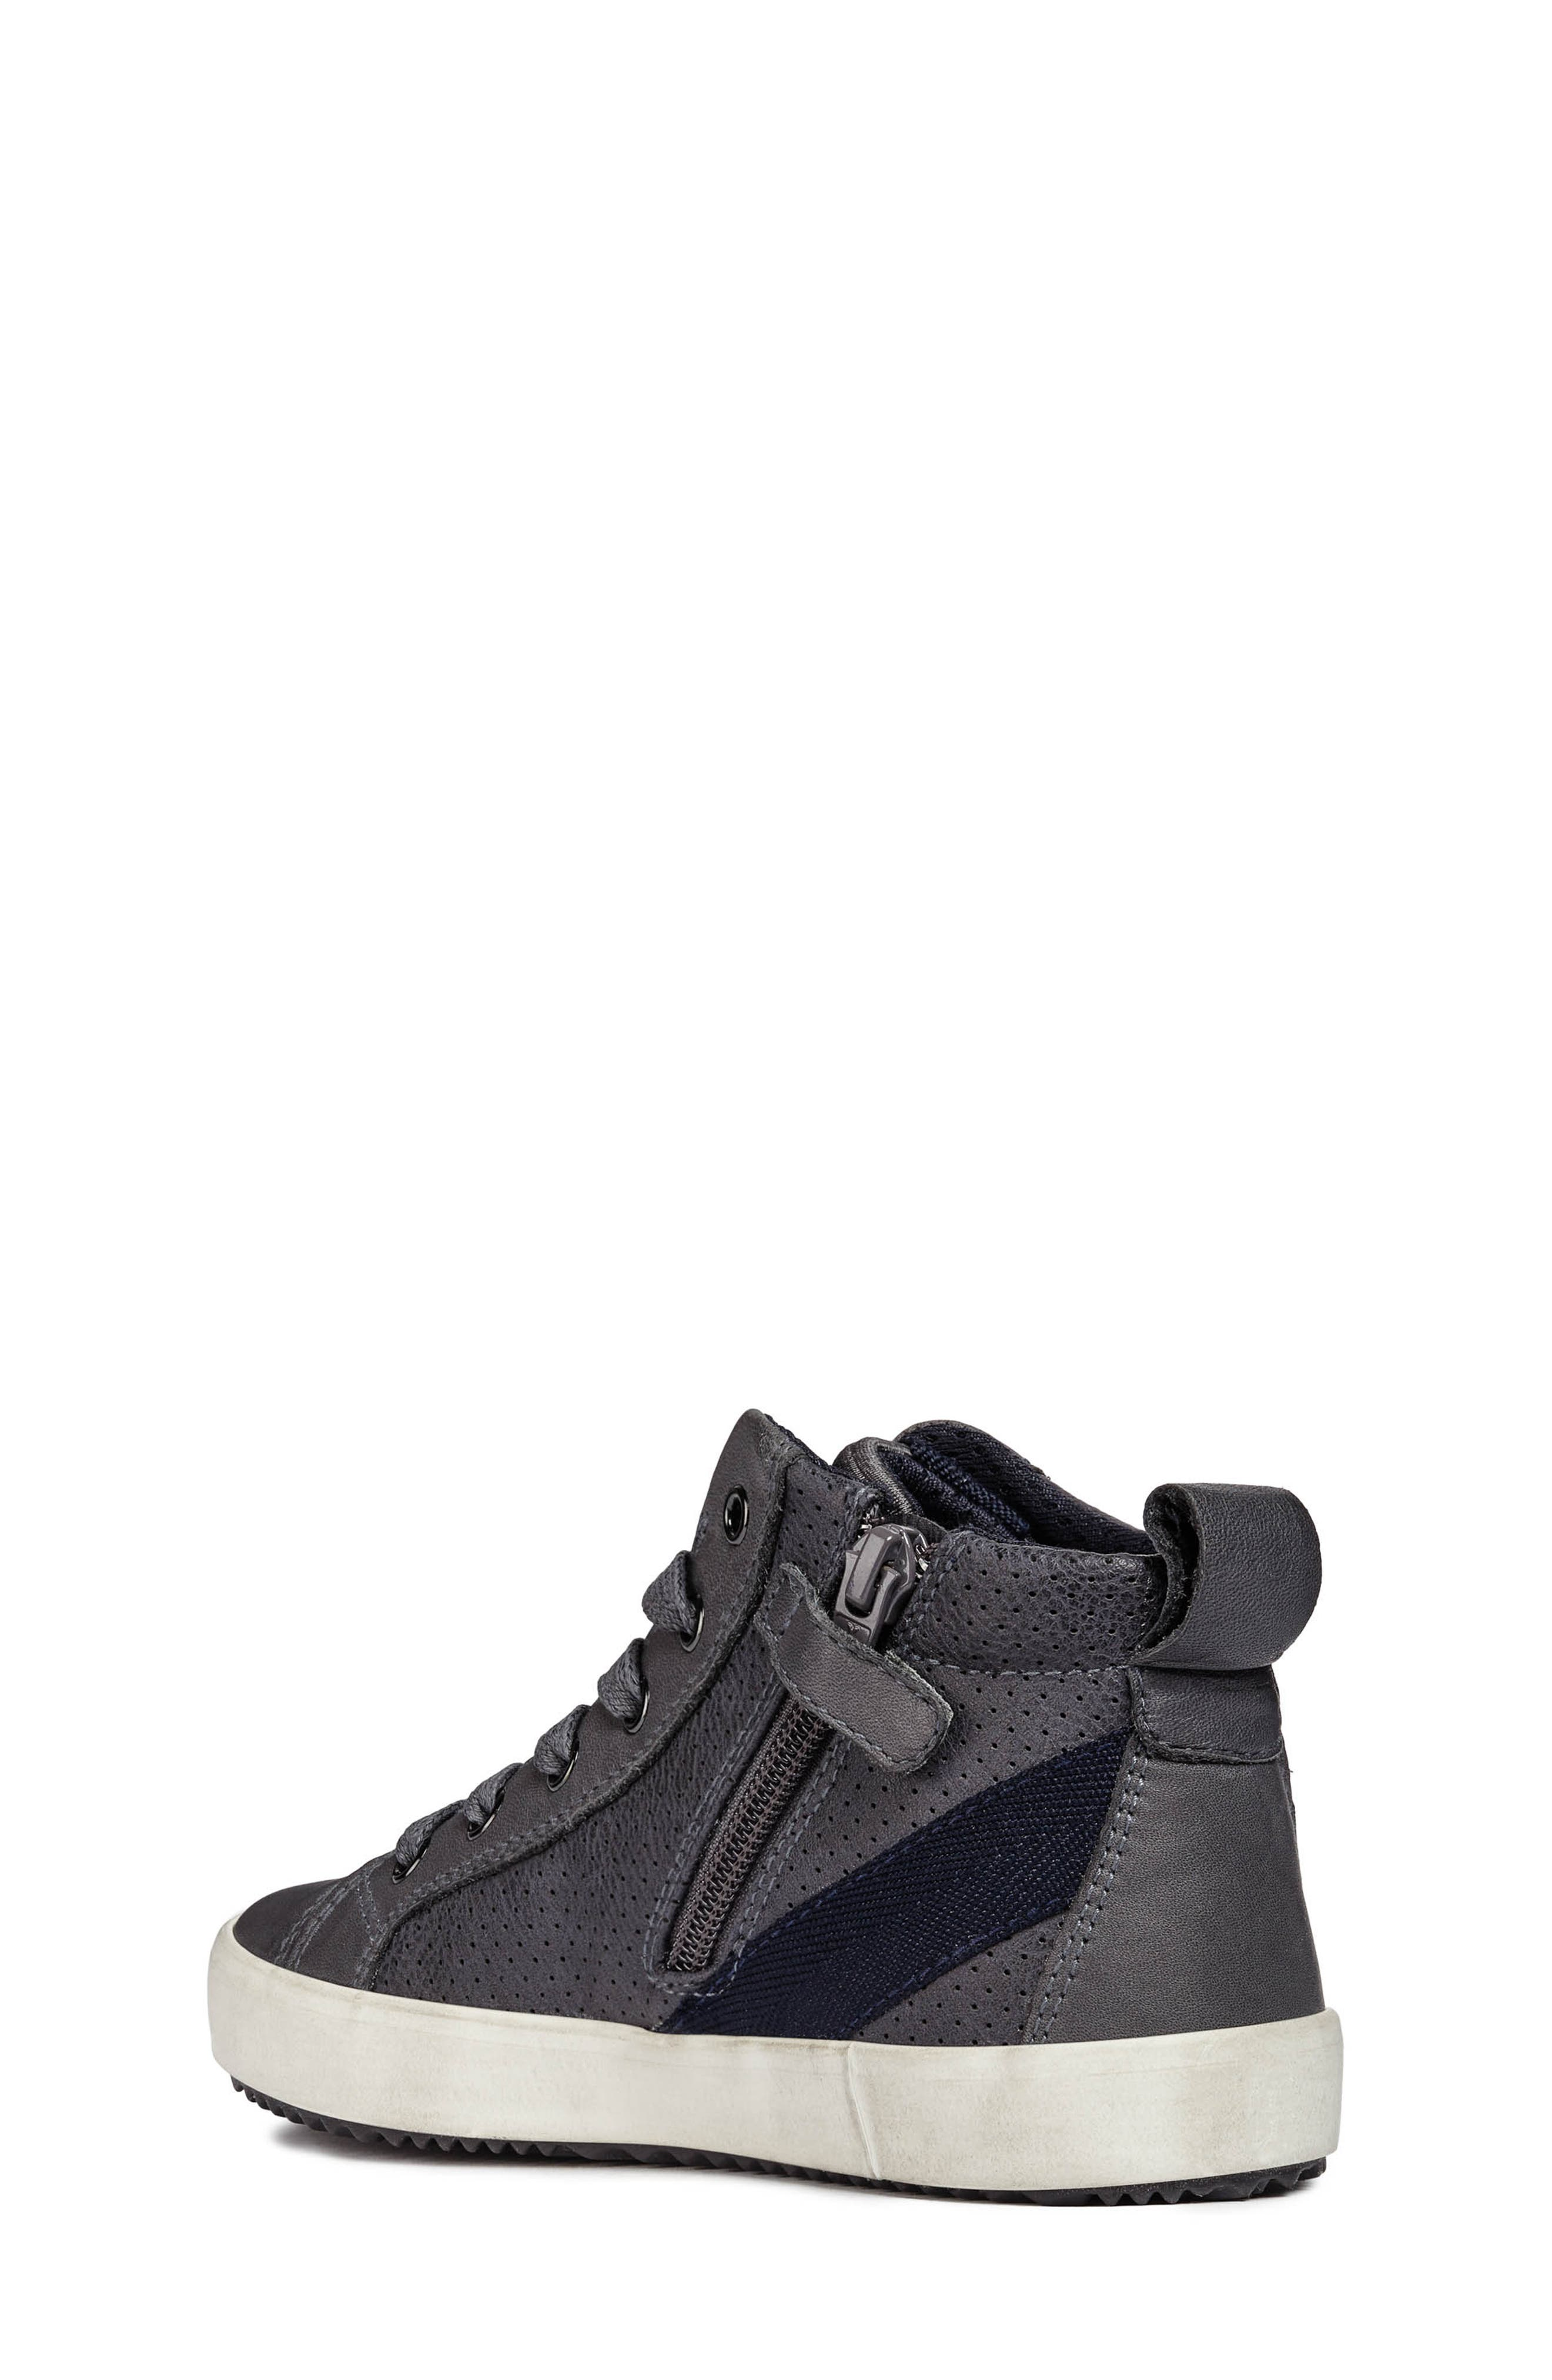 Alonisso High-Top Sneaker,                             Alternate thumbnail 2, color,                             GREY/DARK GREY